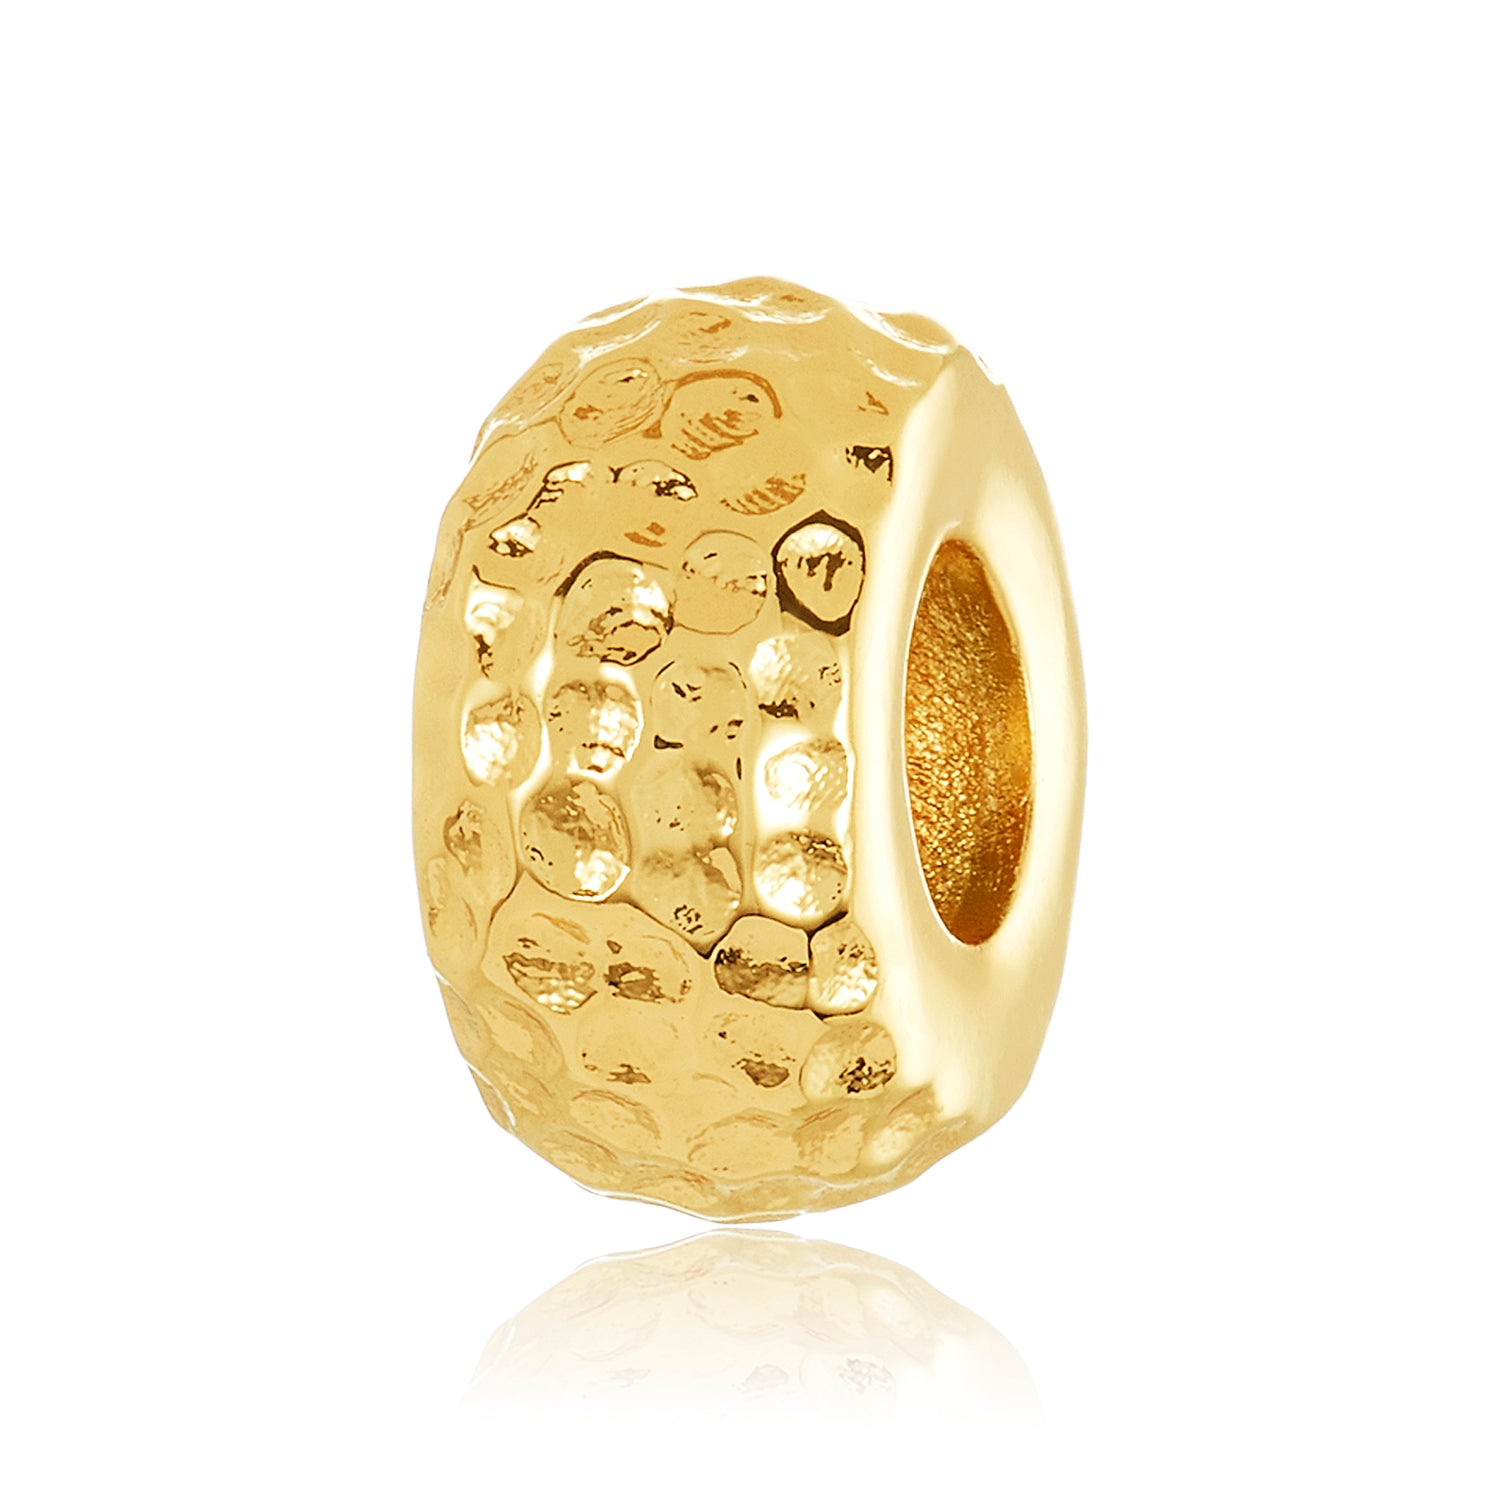 Gold spacer with hammer design to be used on DBW interchangeable bangle bracelets.  Gold spacers sold in pairs.